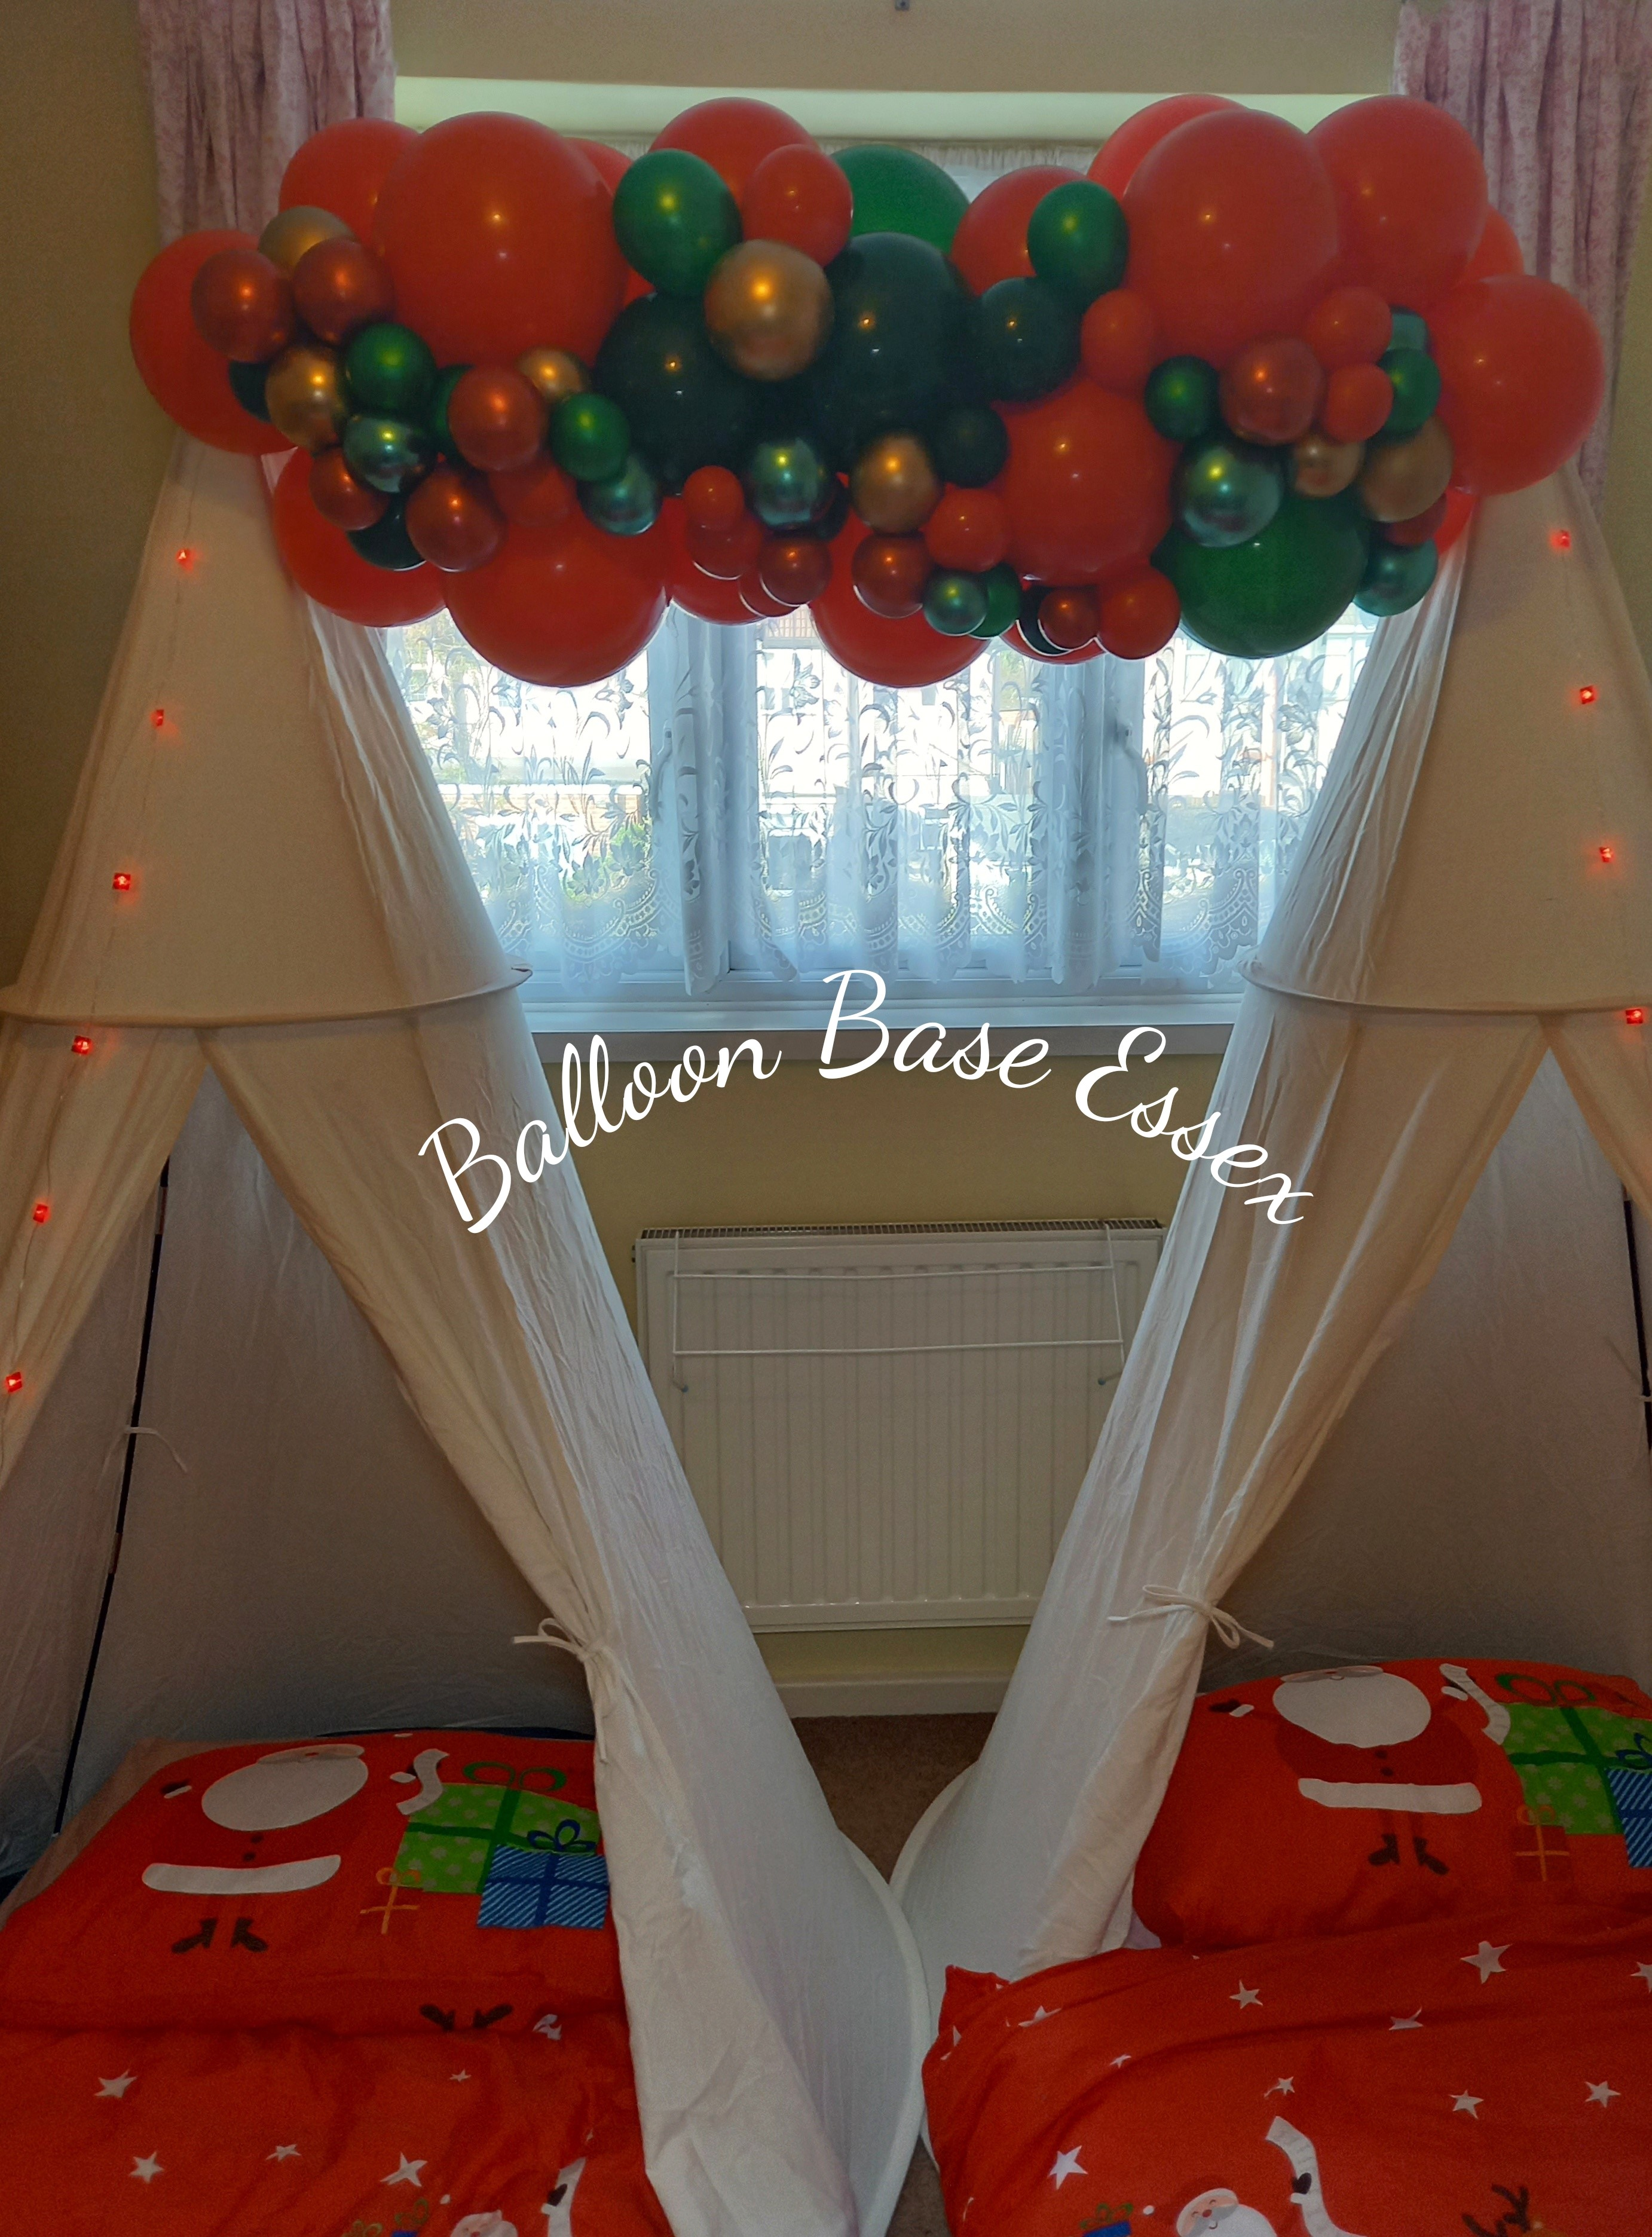 White teepee tents with balloon garland